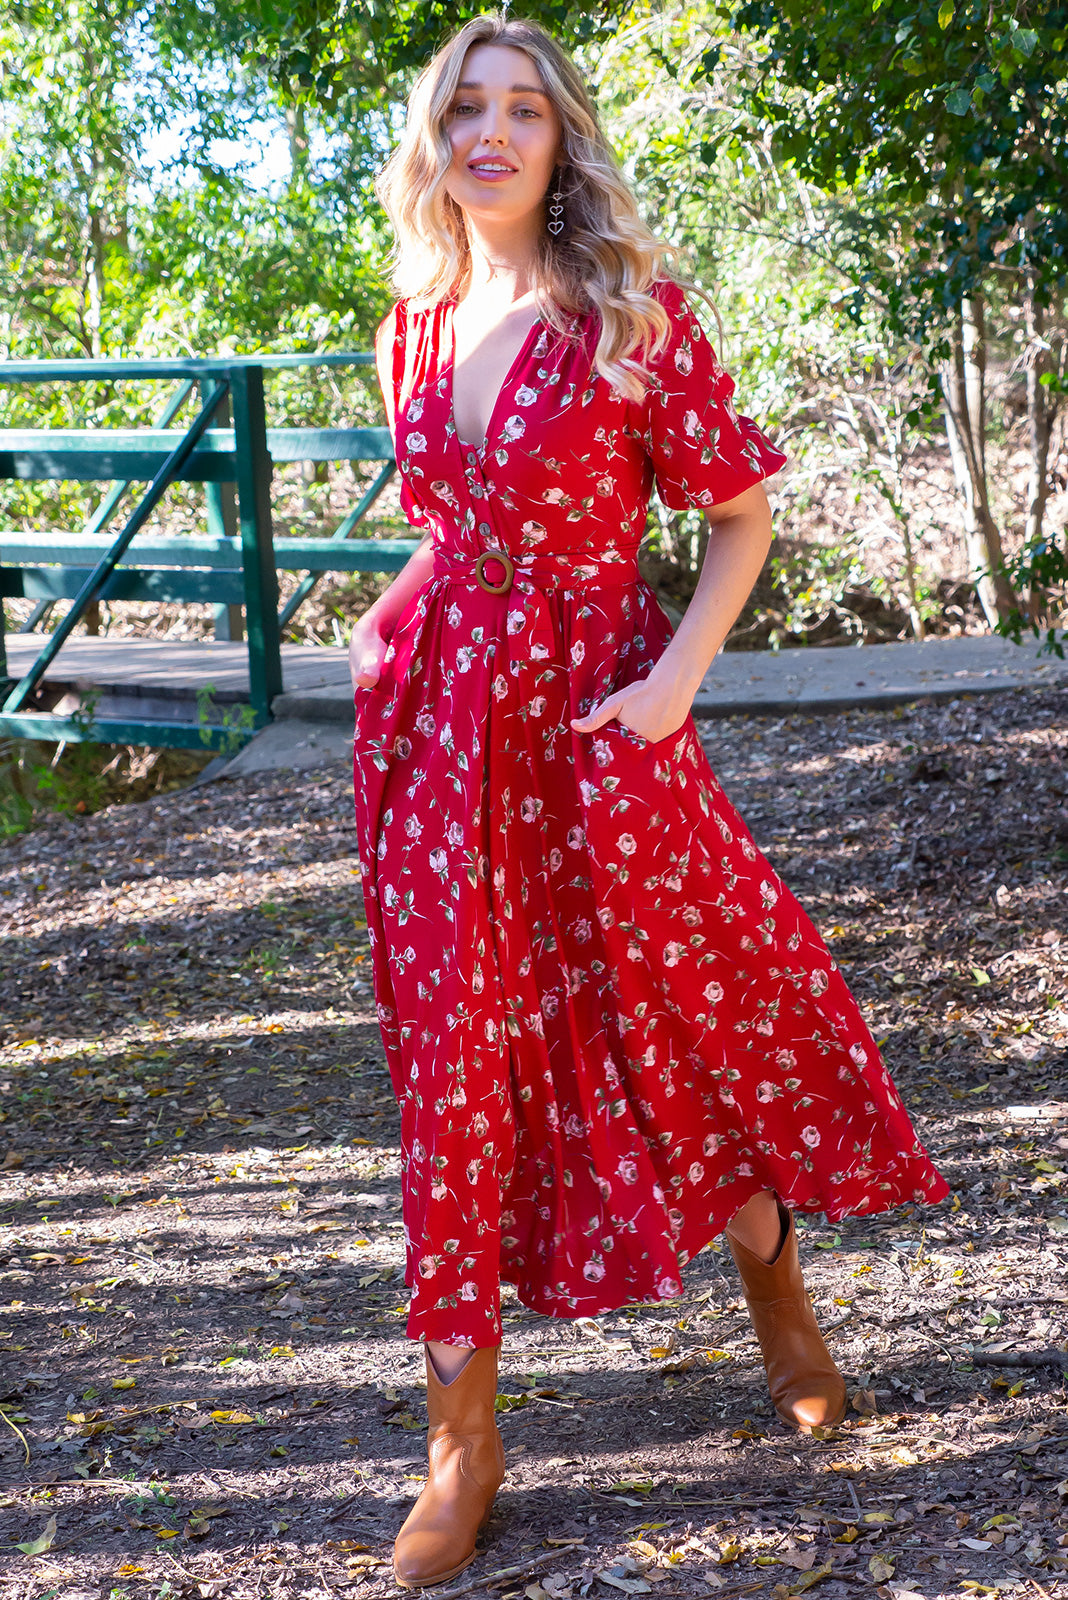 Primrose Red Rosedrop Dress is made from 100% Rayon. Functional button down front in a vintage patterned fabric. Gorgeous deep red romantic shade. Comes with deep pockets. Flattering flowy skirt, very soft and comfortable. Retro Inspired.